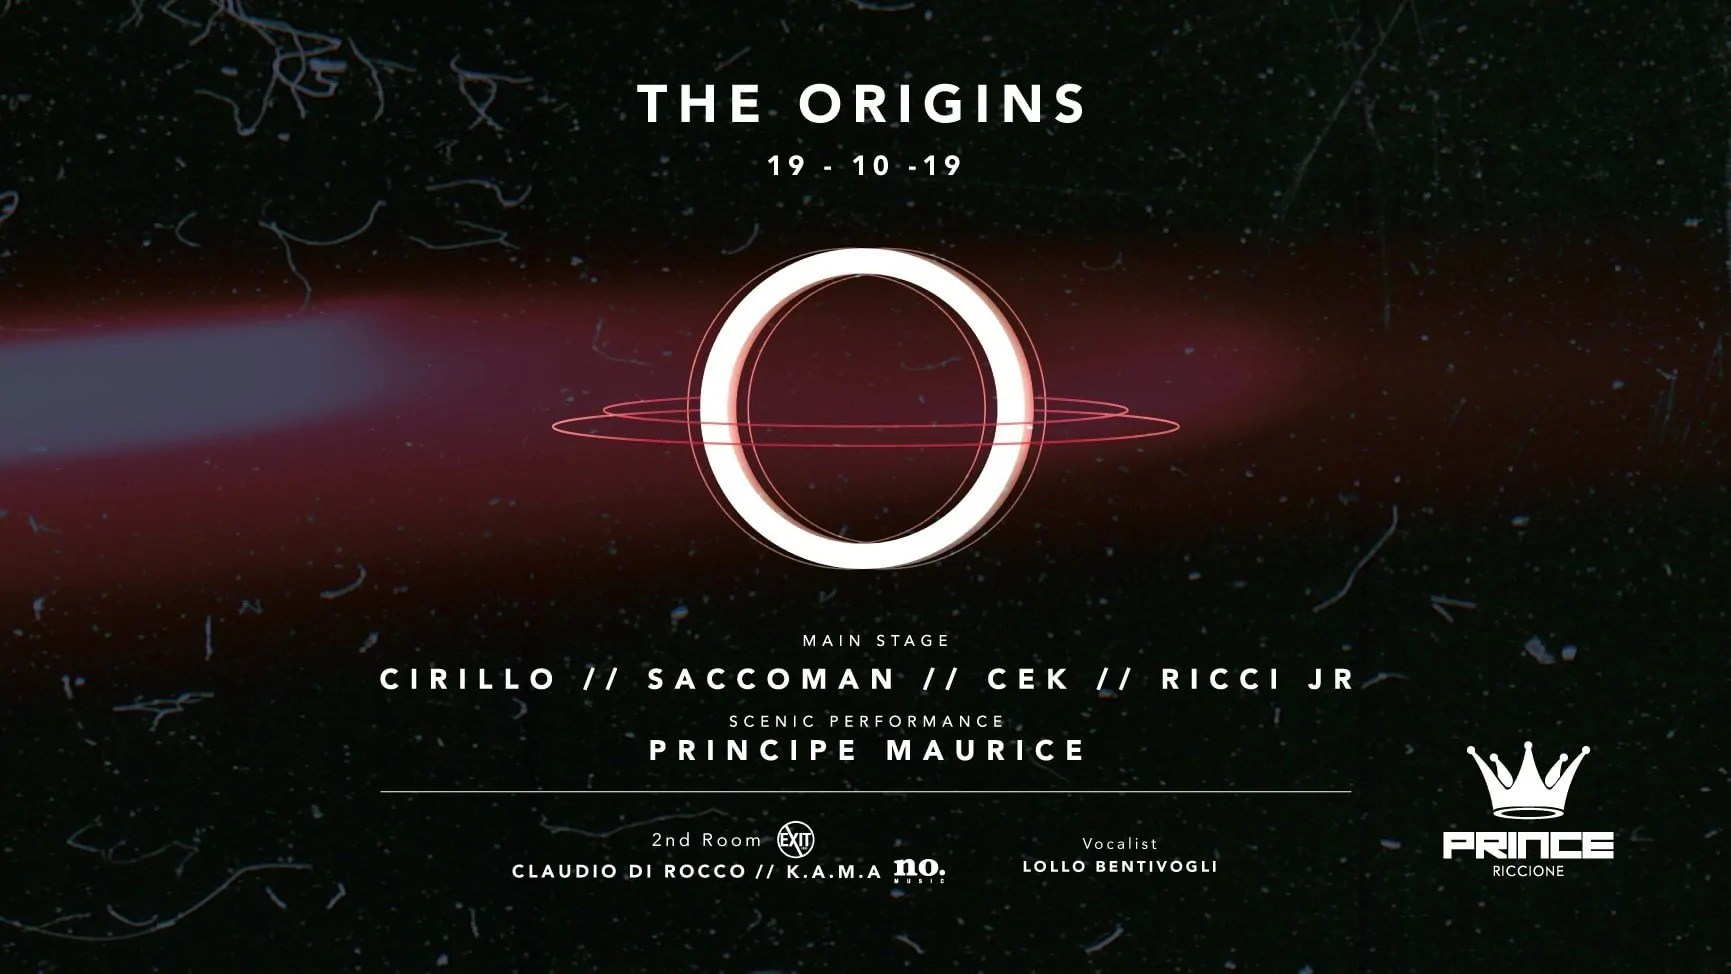 Prince Riccione The Origins Open Party 19 Ottobre 201-min